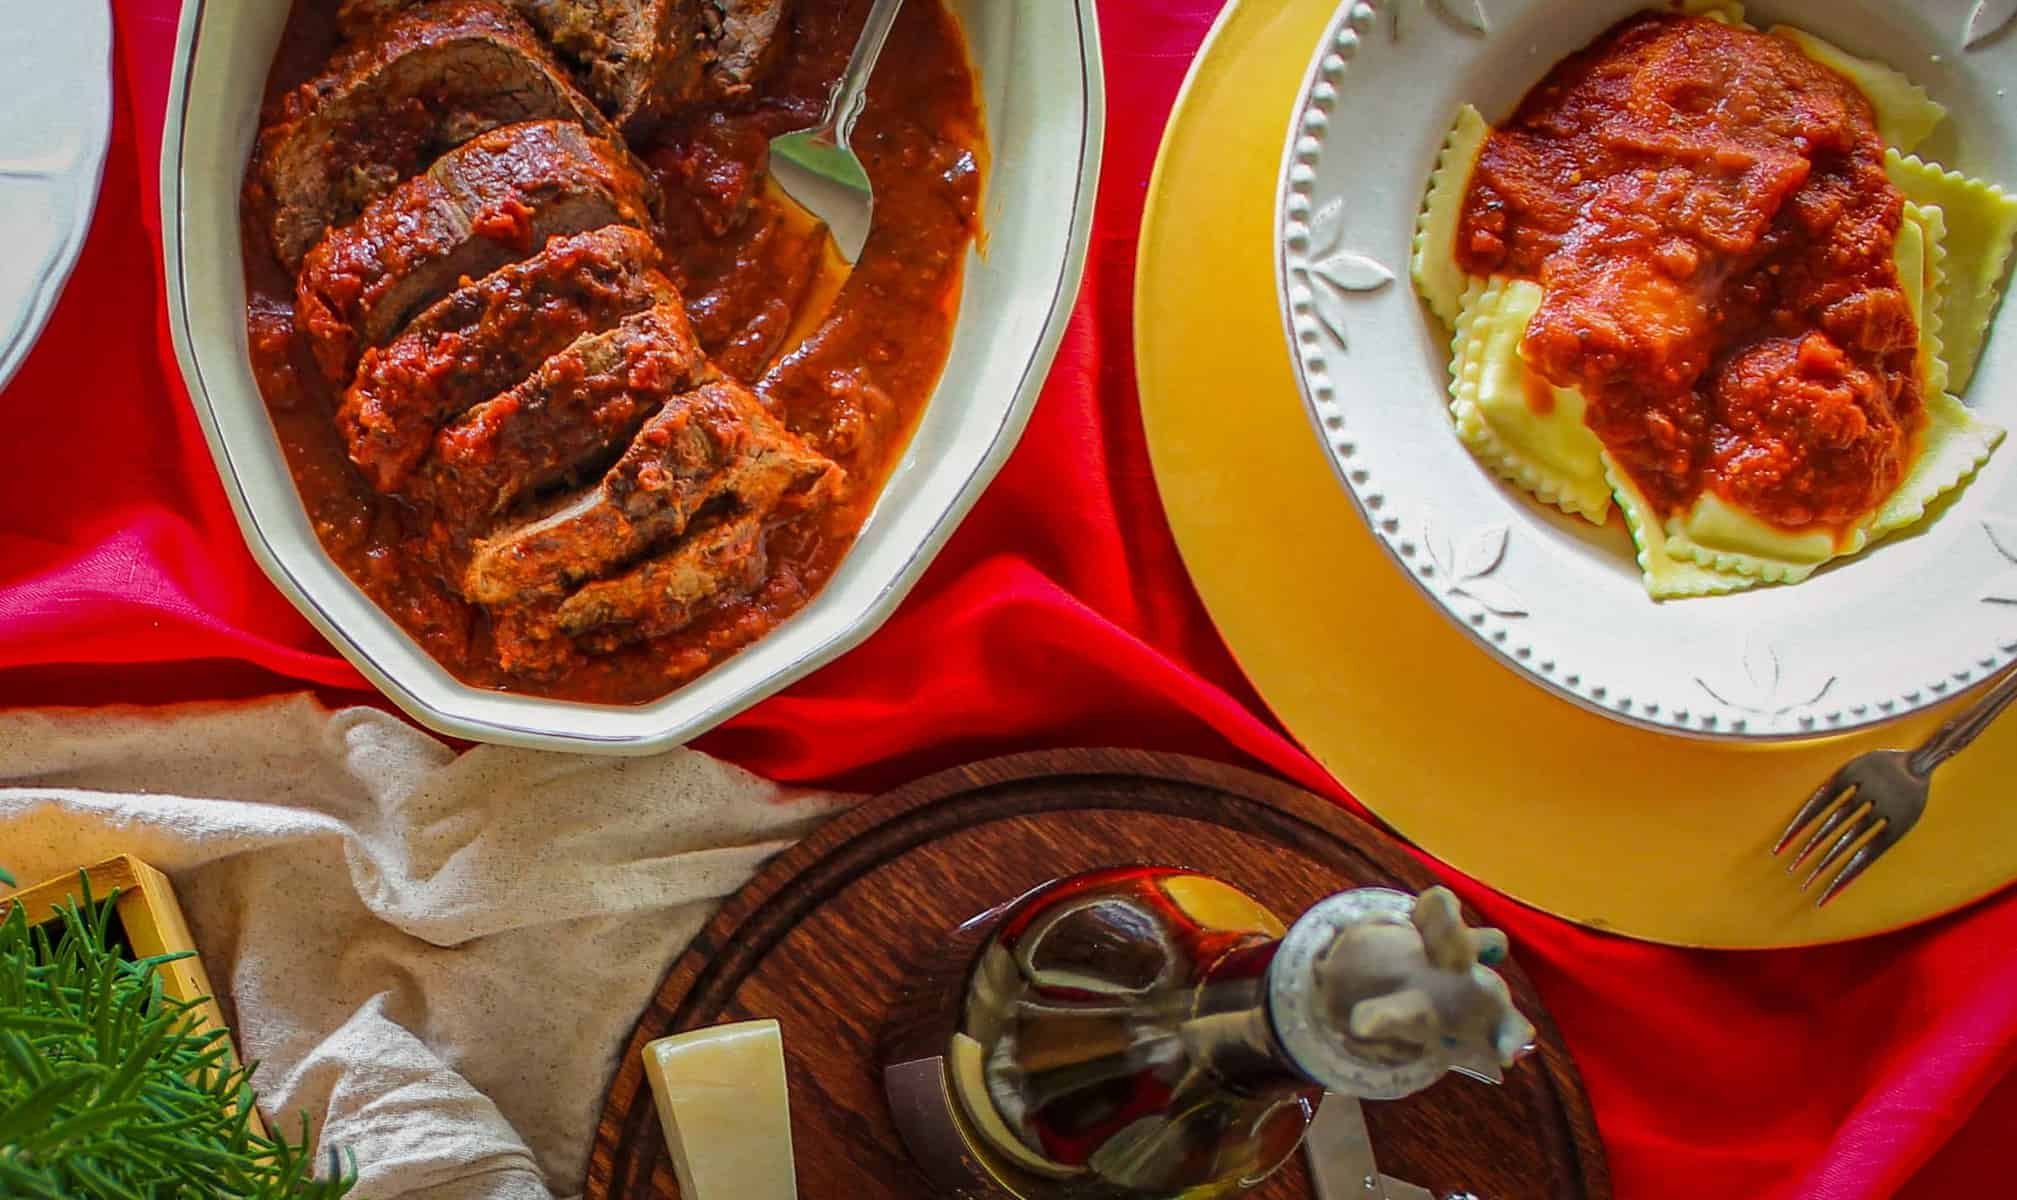 overhead shot of a dinner table with braciole and ravioli with marinara